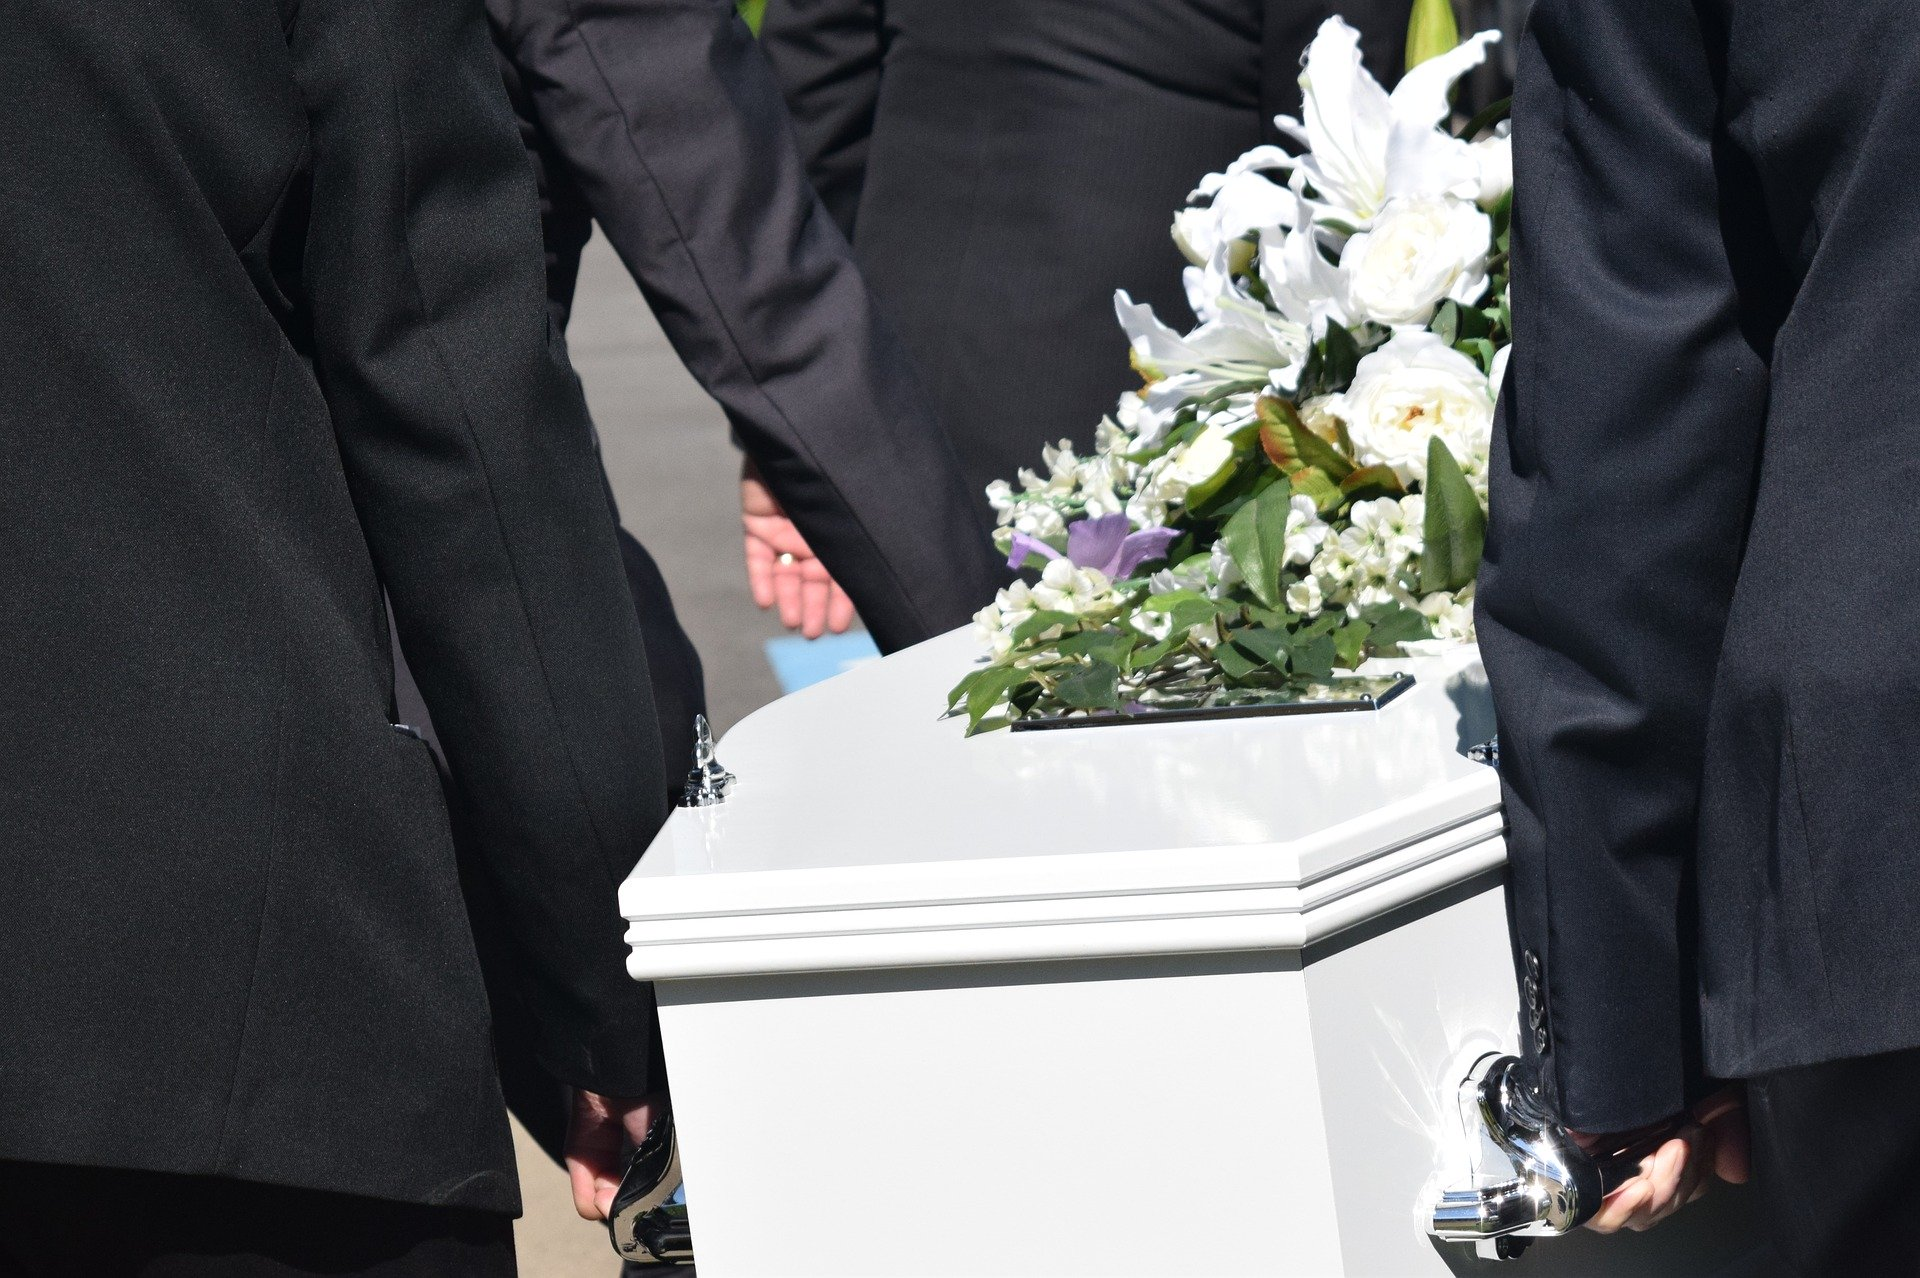 Pallbearers carrying a white casket adorned with flowers